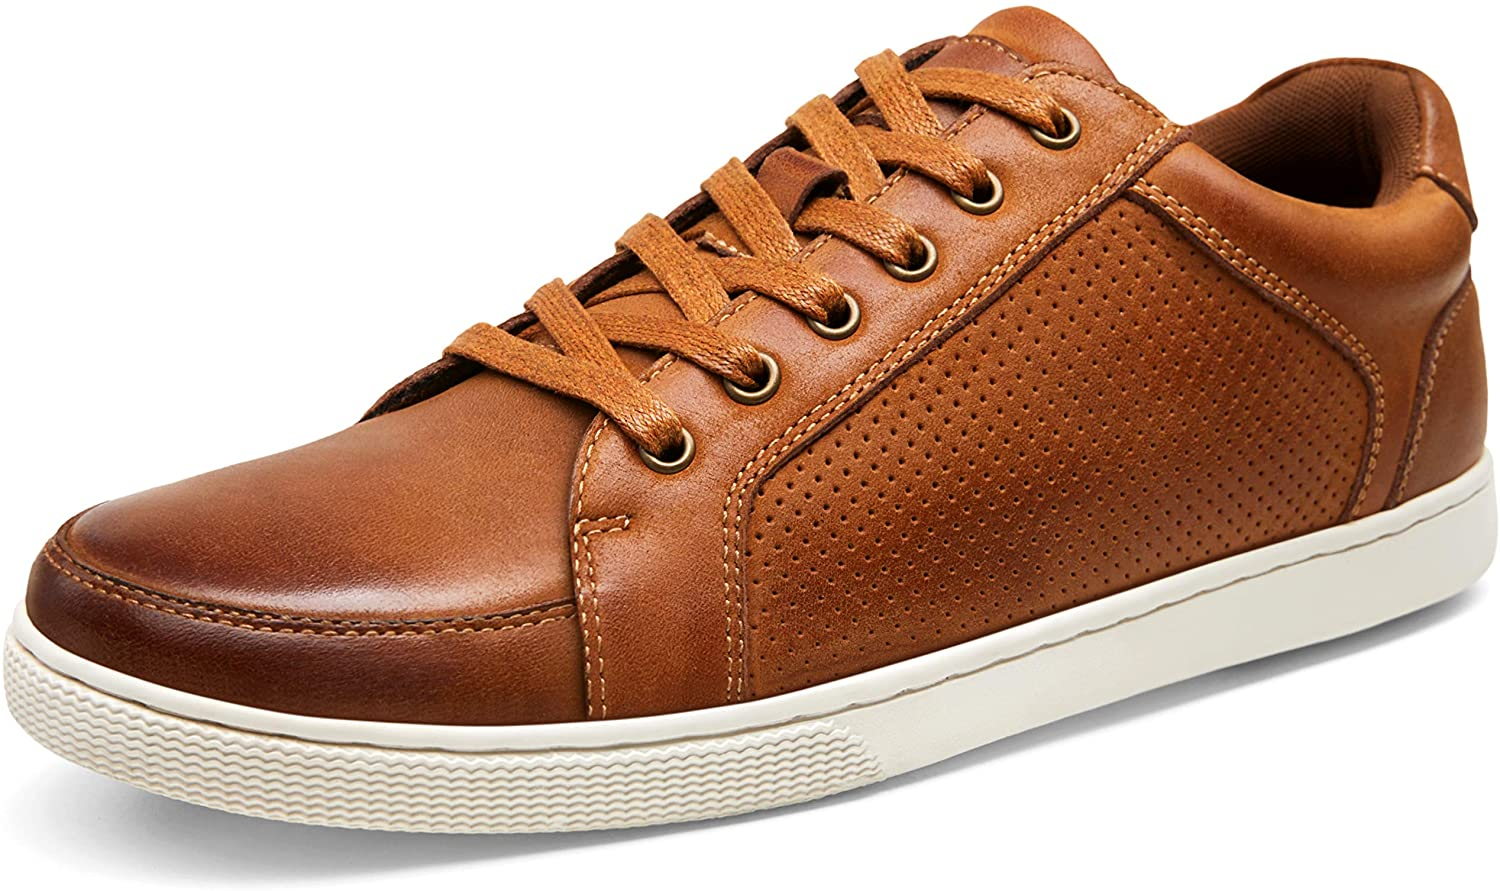 Men's Leather Oxford Sneakers | Jousen